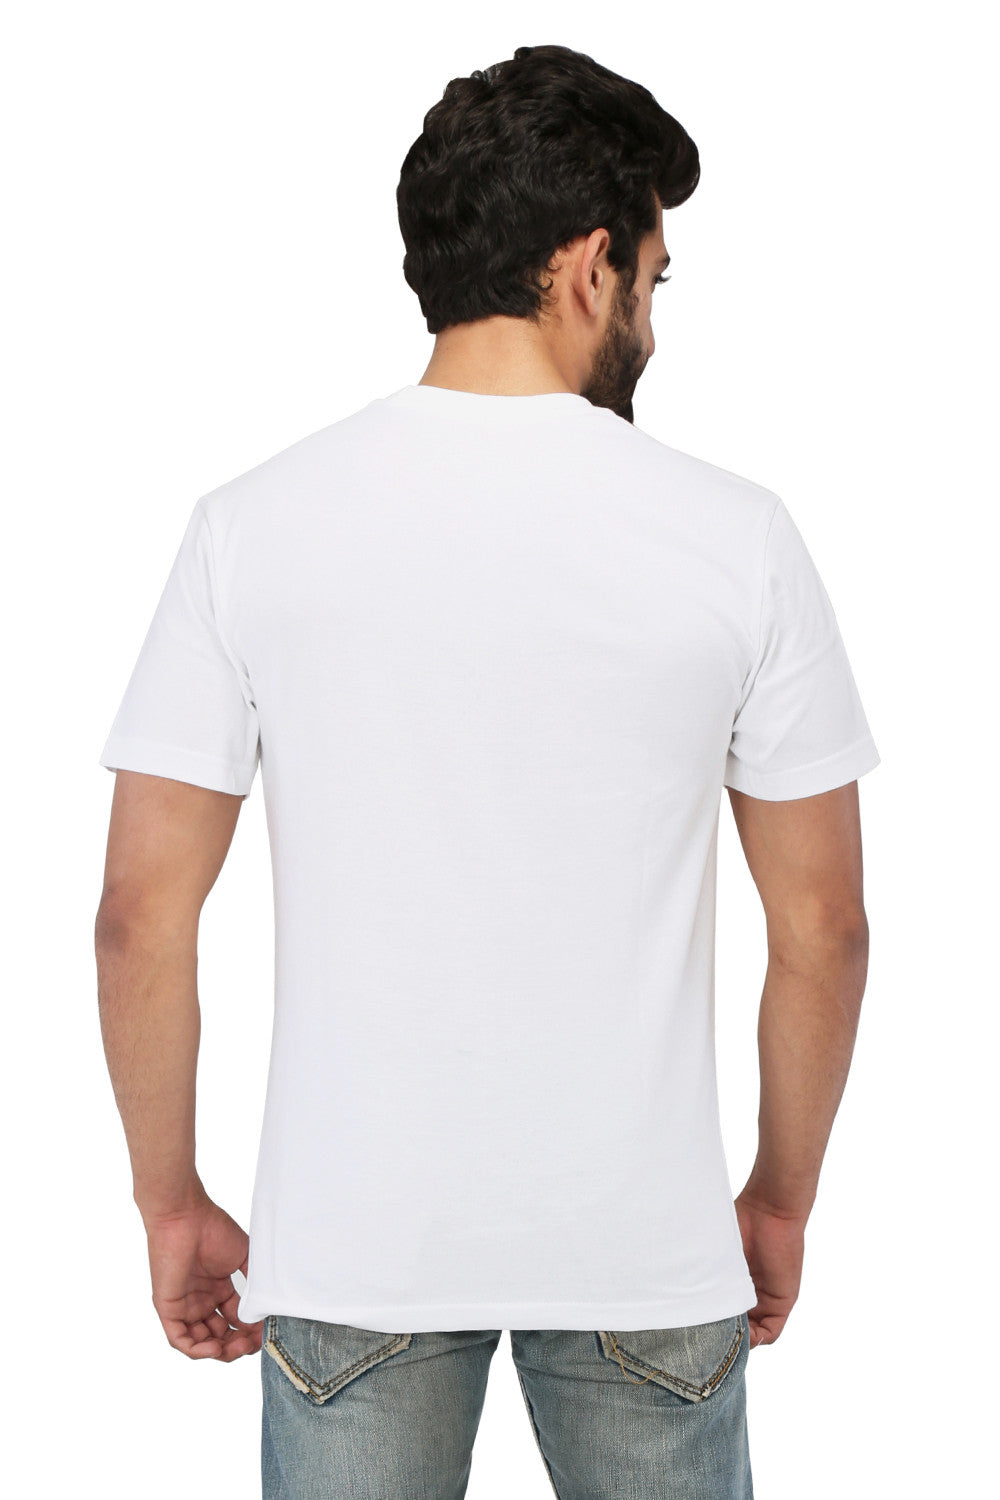 Hand-painted Waves White T-shirt - Rang Rage  - 2